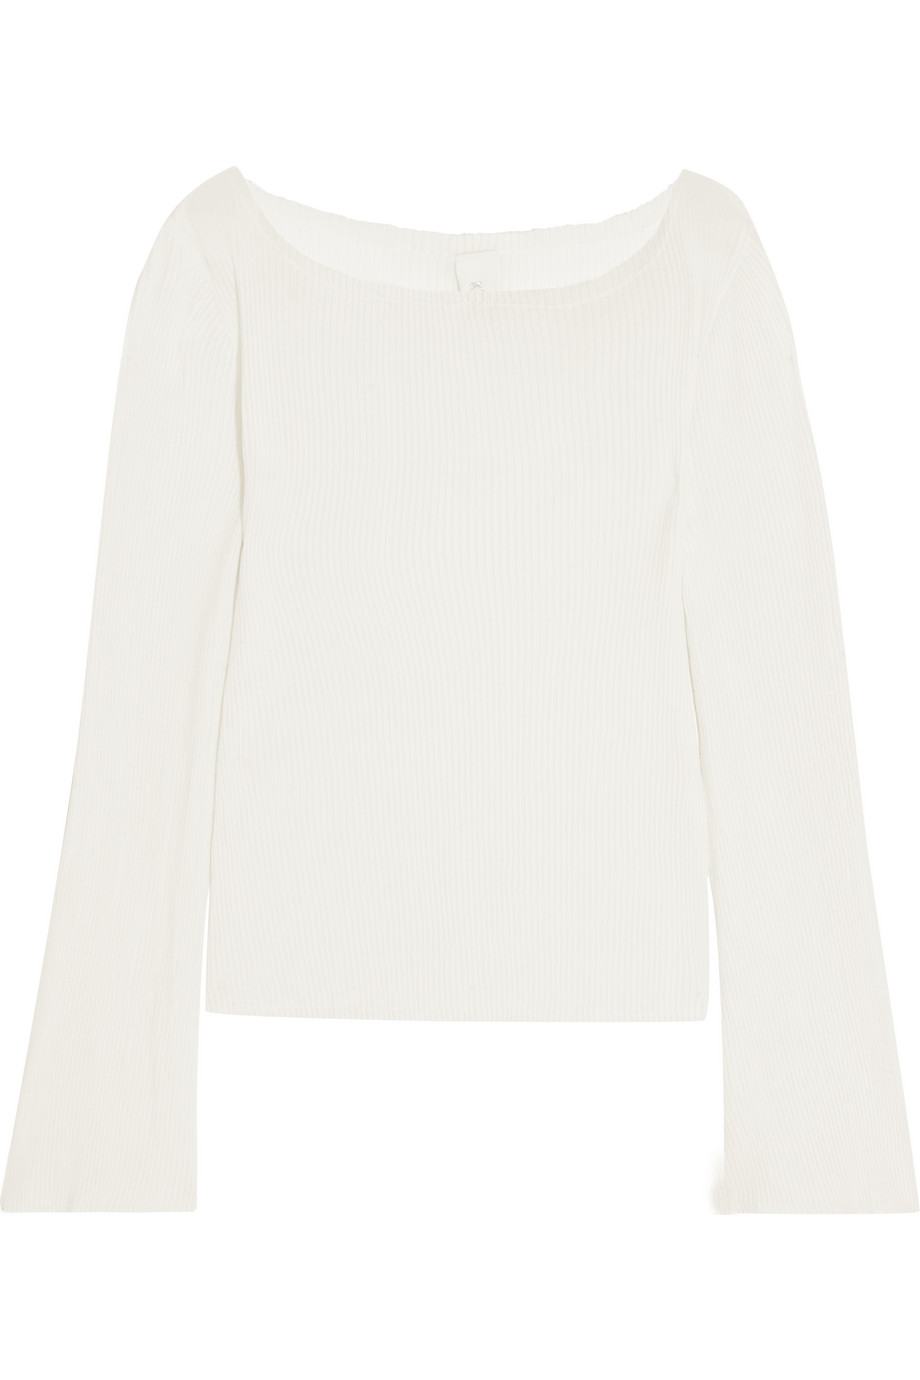 Off-the-Shoulder Plissé Cotton-Jersey Top, White, Women's, Size: 40